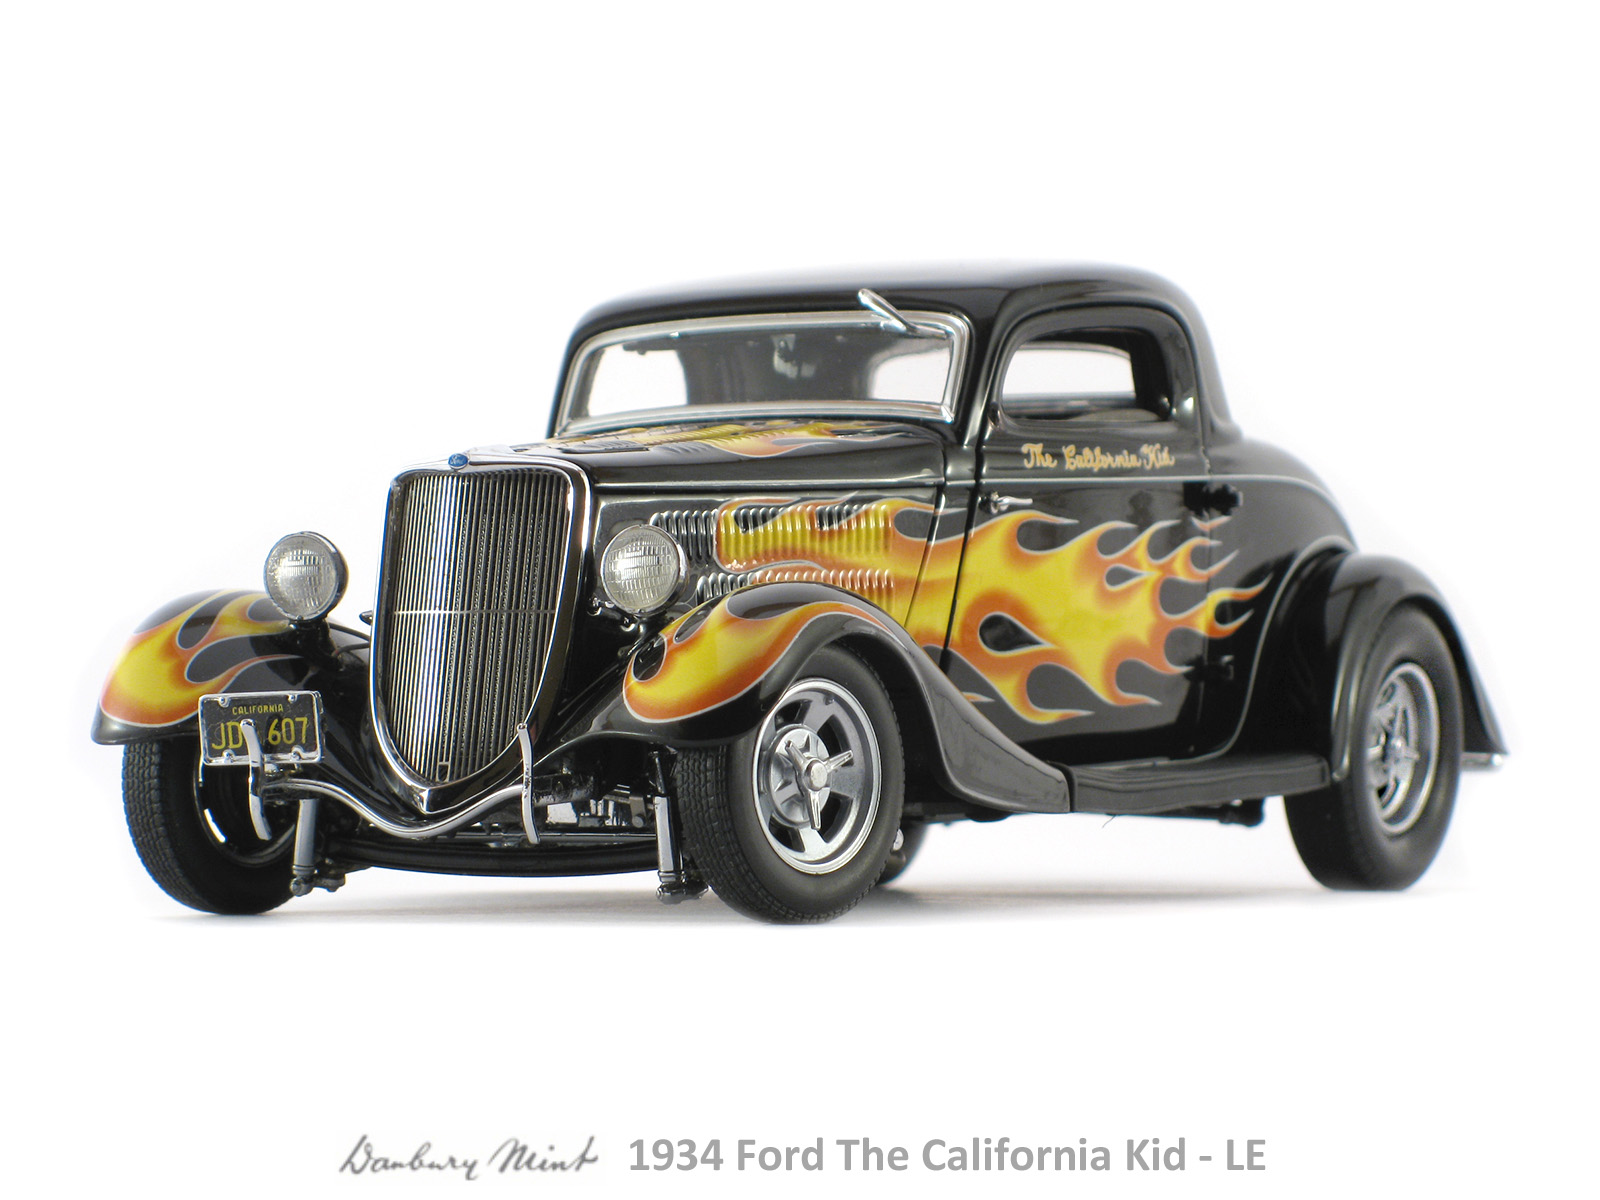 Danbury Mint 1934 Ford The California Kid - Limited Edition